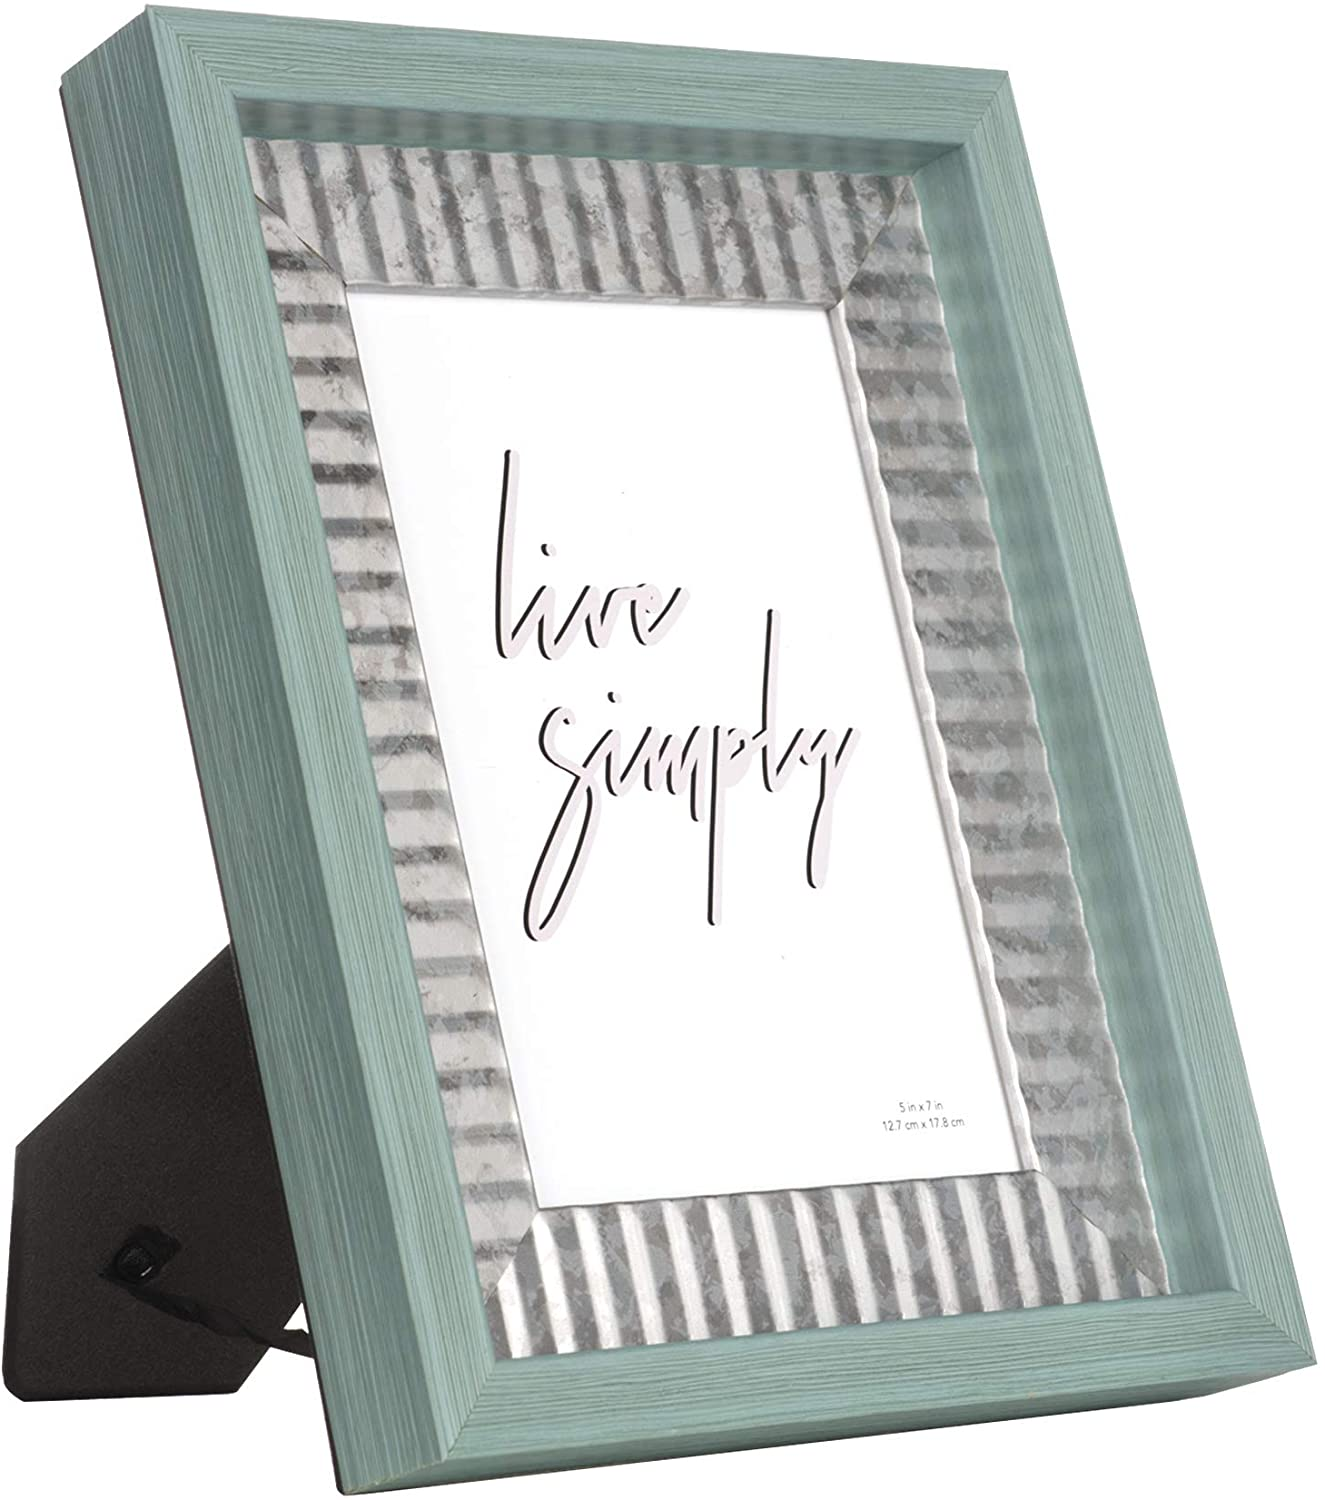 YOUNG POONG 5x7 Picture Frame Made of Ps for Table-Top Display and Wall Mounting Photo Frame